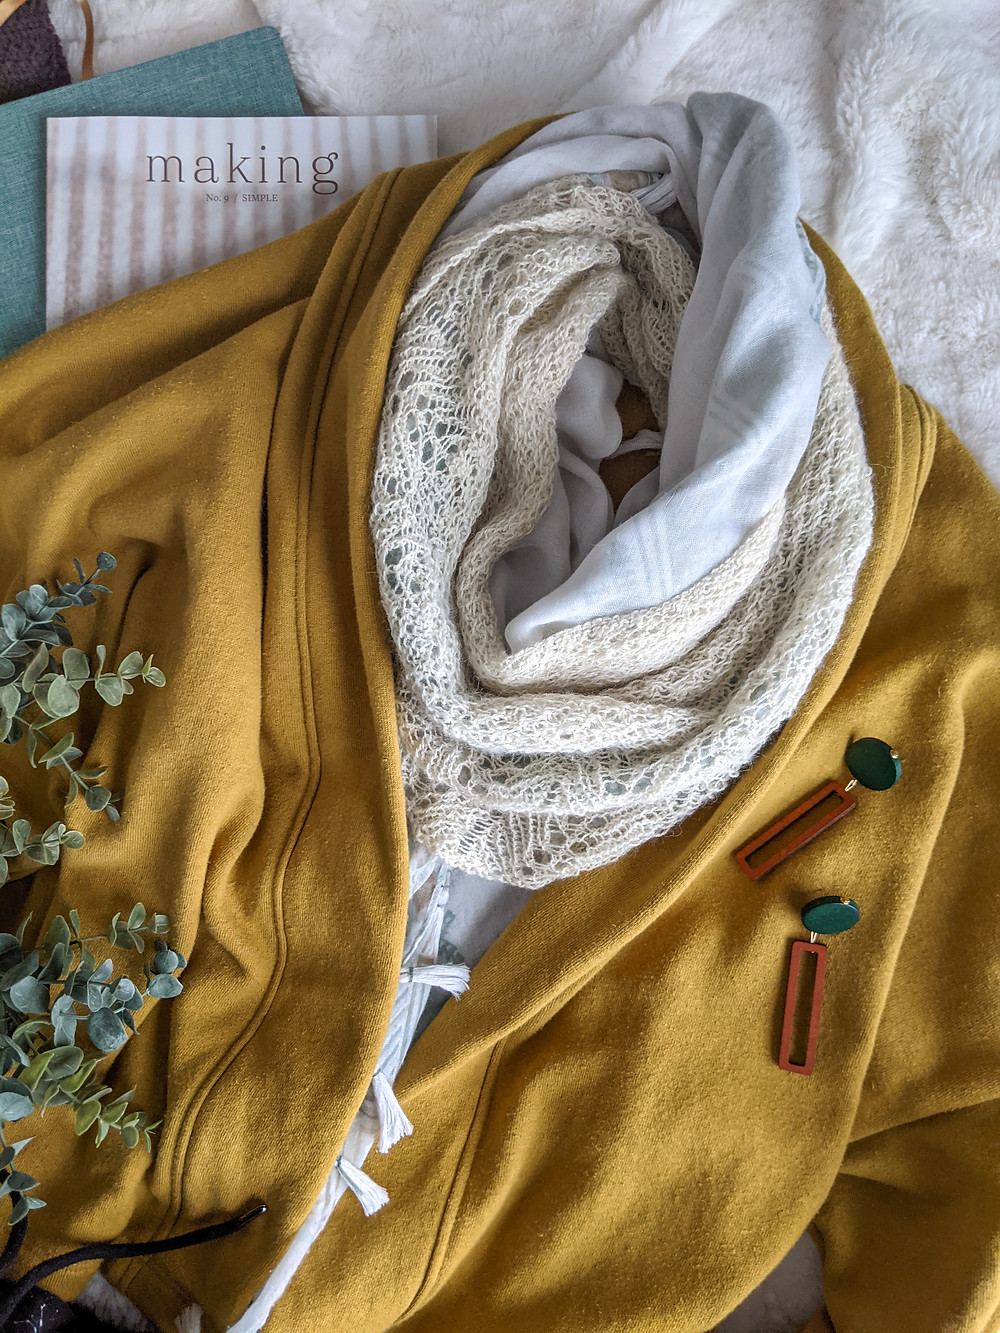 Delicate lace scarf layered with a gauze scarf, mustard fleece jacket.